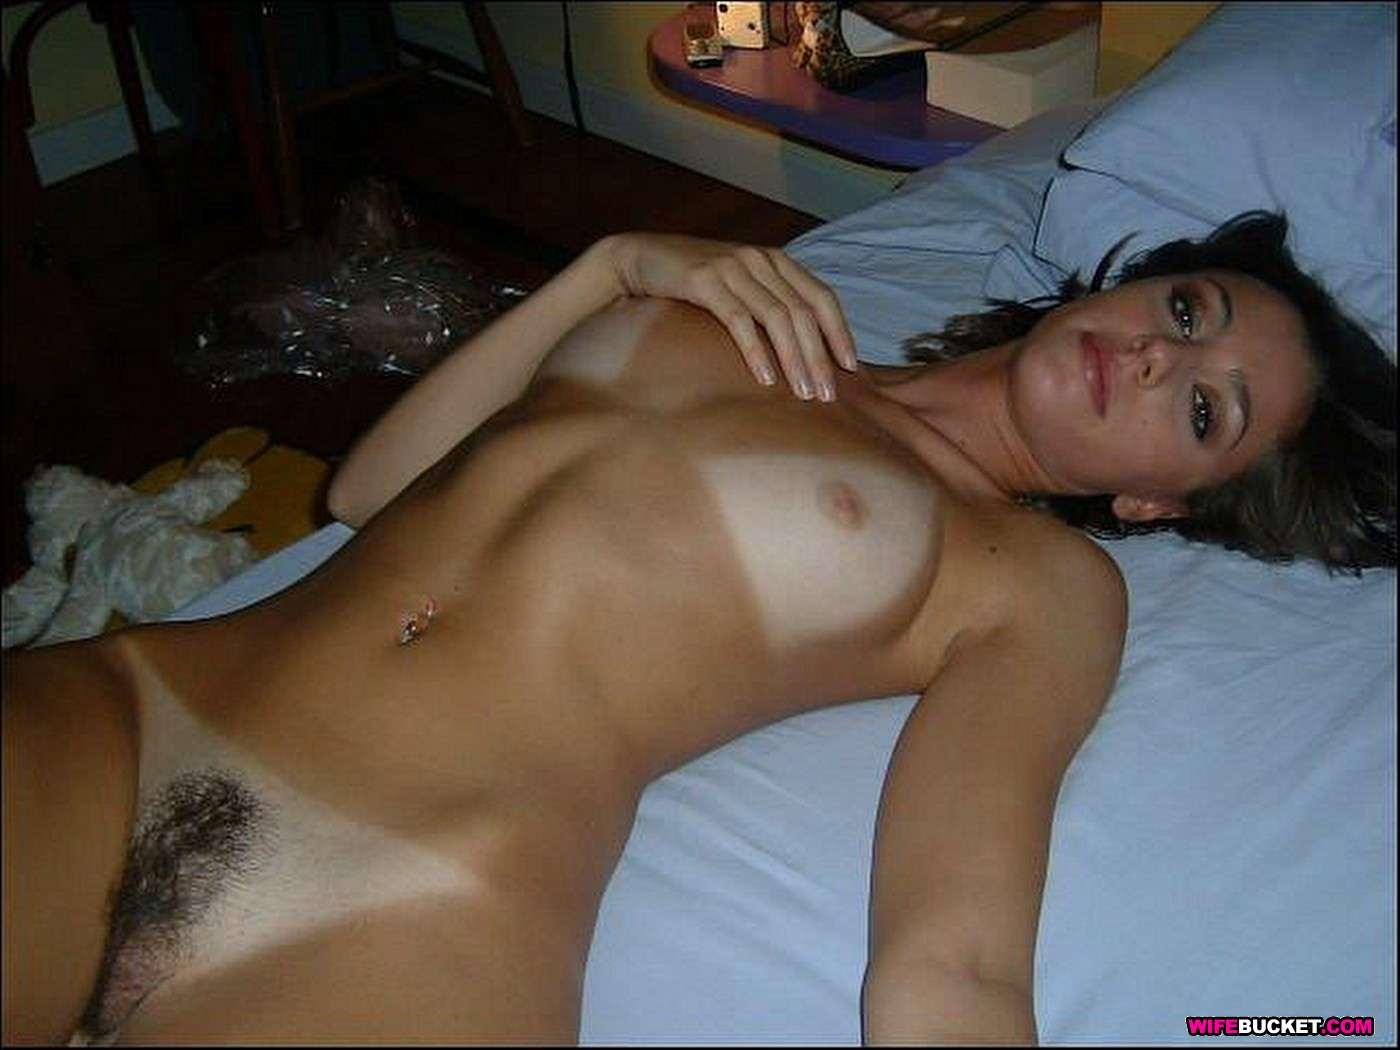 Wifebucket - Real Amateur Milfs And Wives Swingers Too-5754